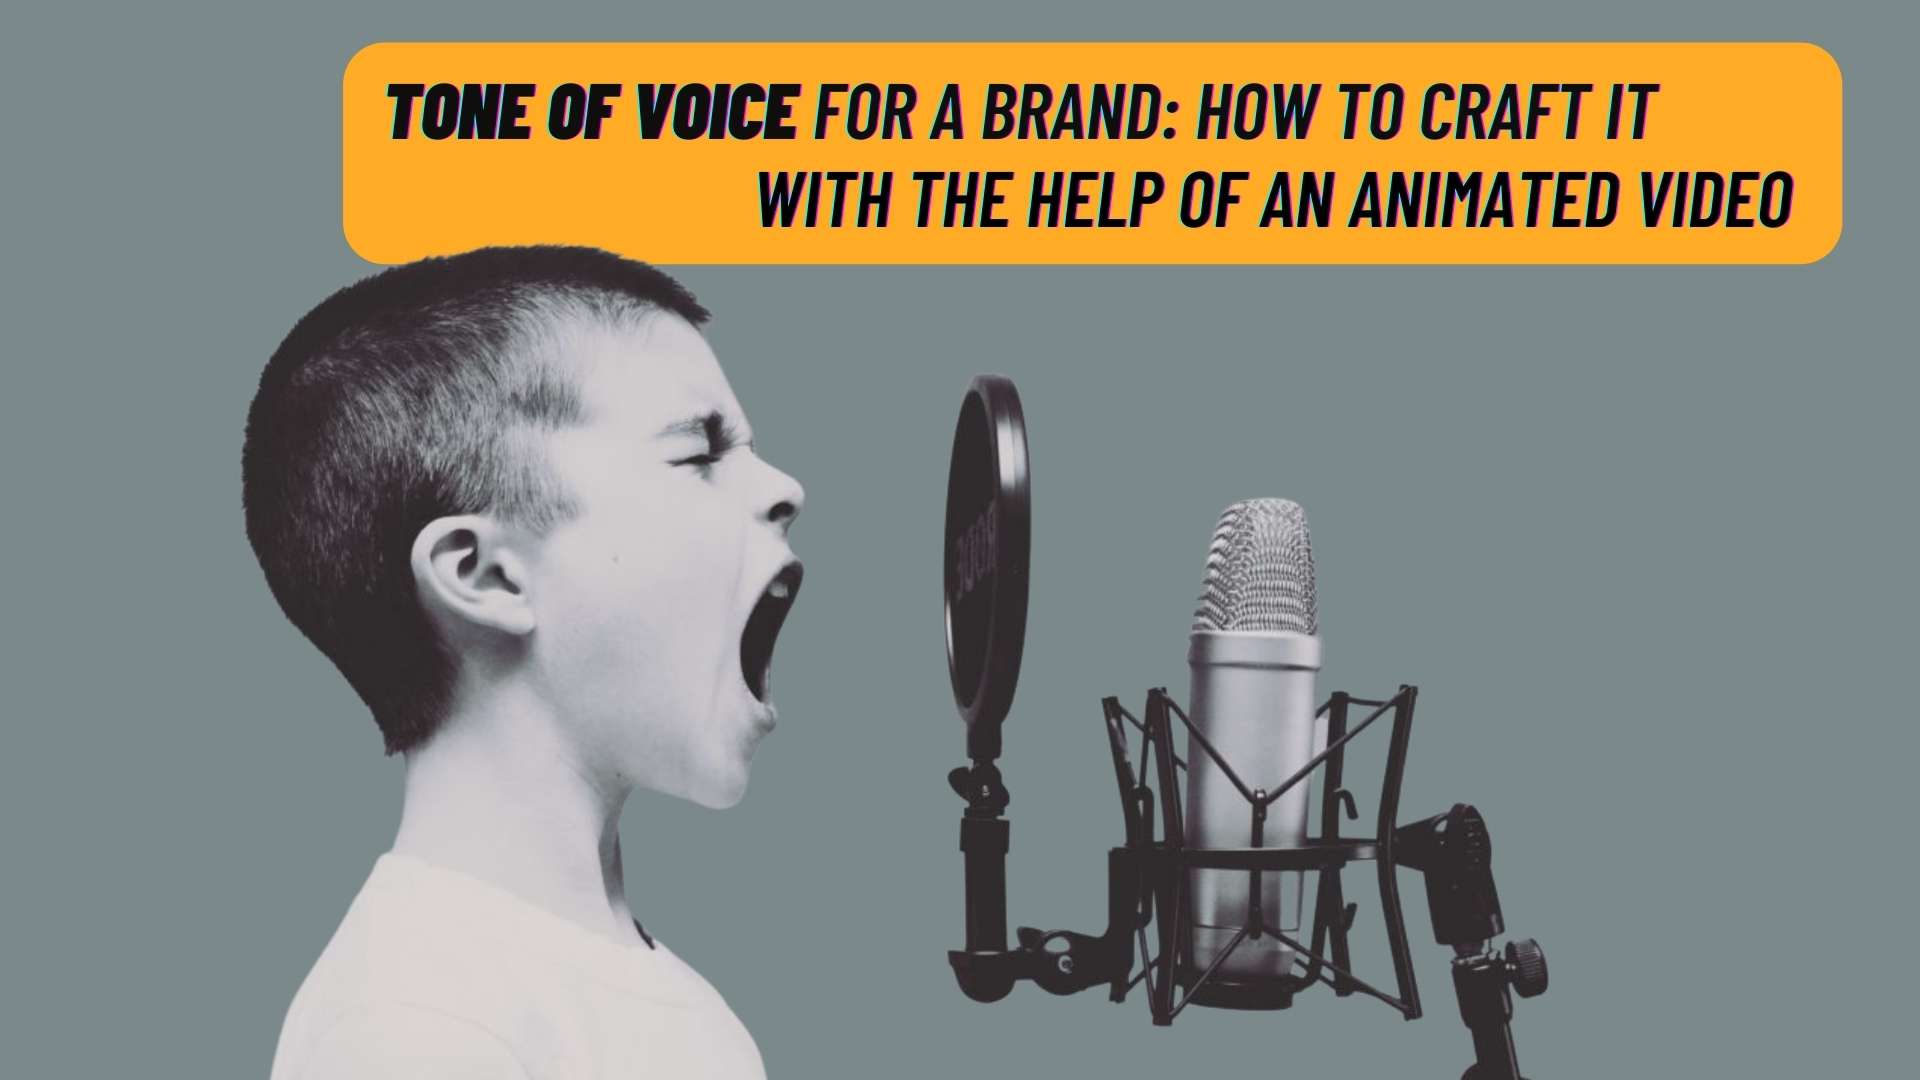 Tone of voice for a brand